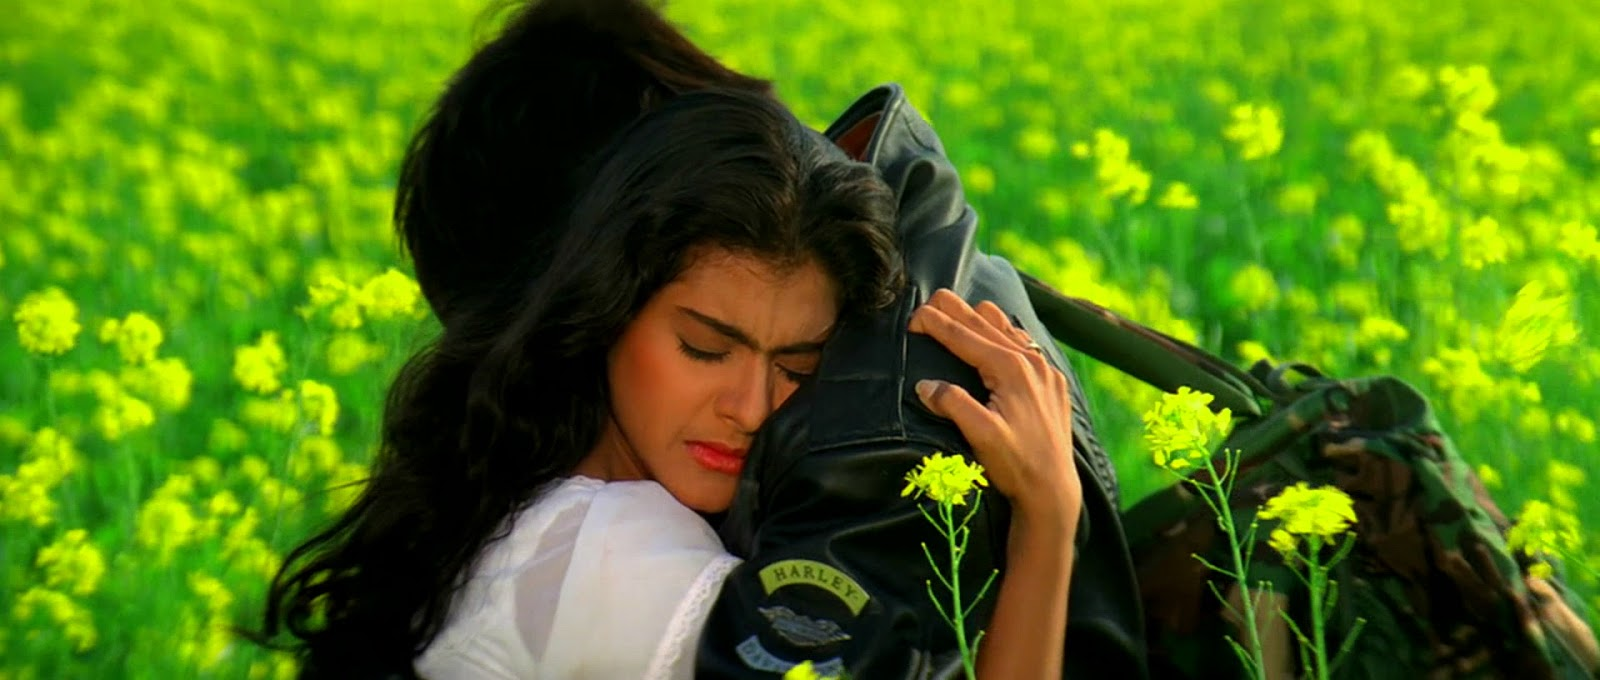 Dilwale Dulhania Le Jayenge (1995) BluRay 1080P (DTS-HDMA ...